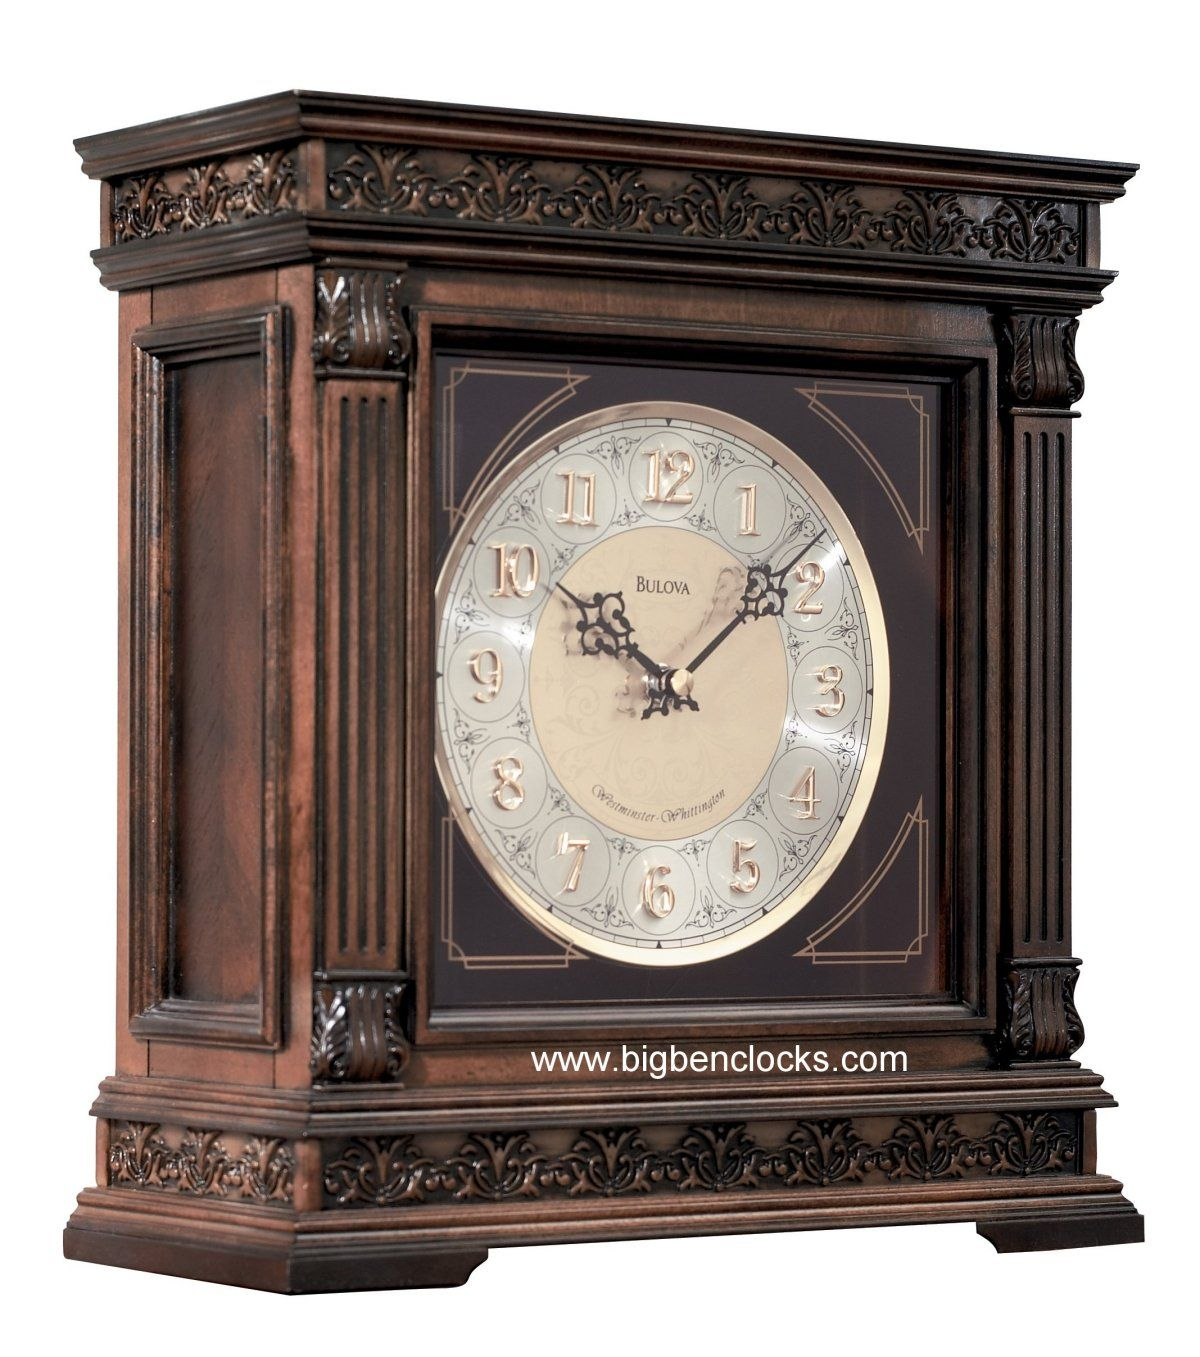 Bulova Mantel Clock | Bulova Grandfather Clocks | Modern Mantle Clock